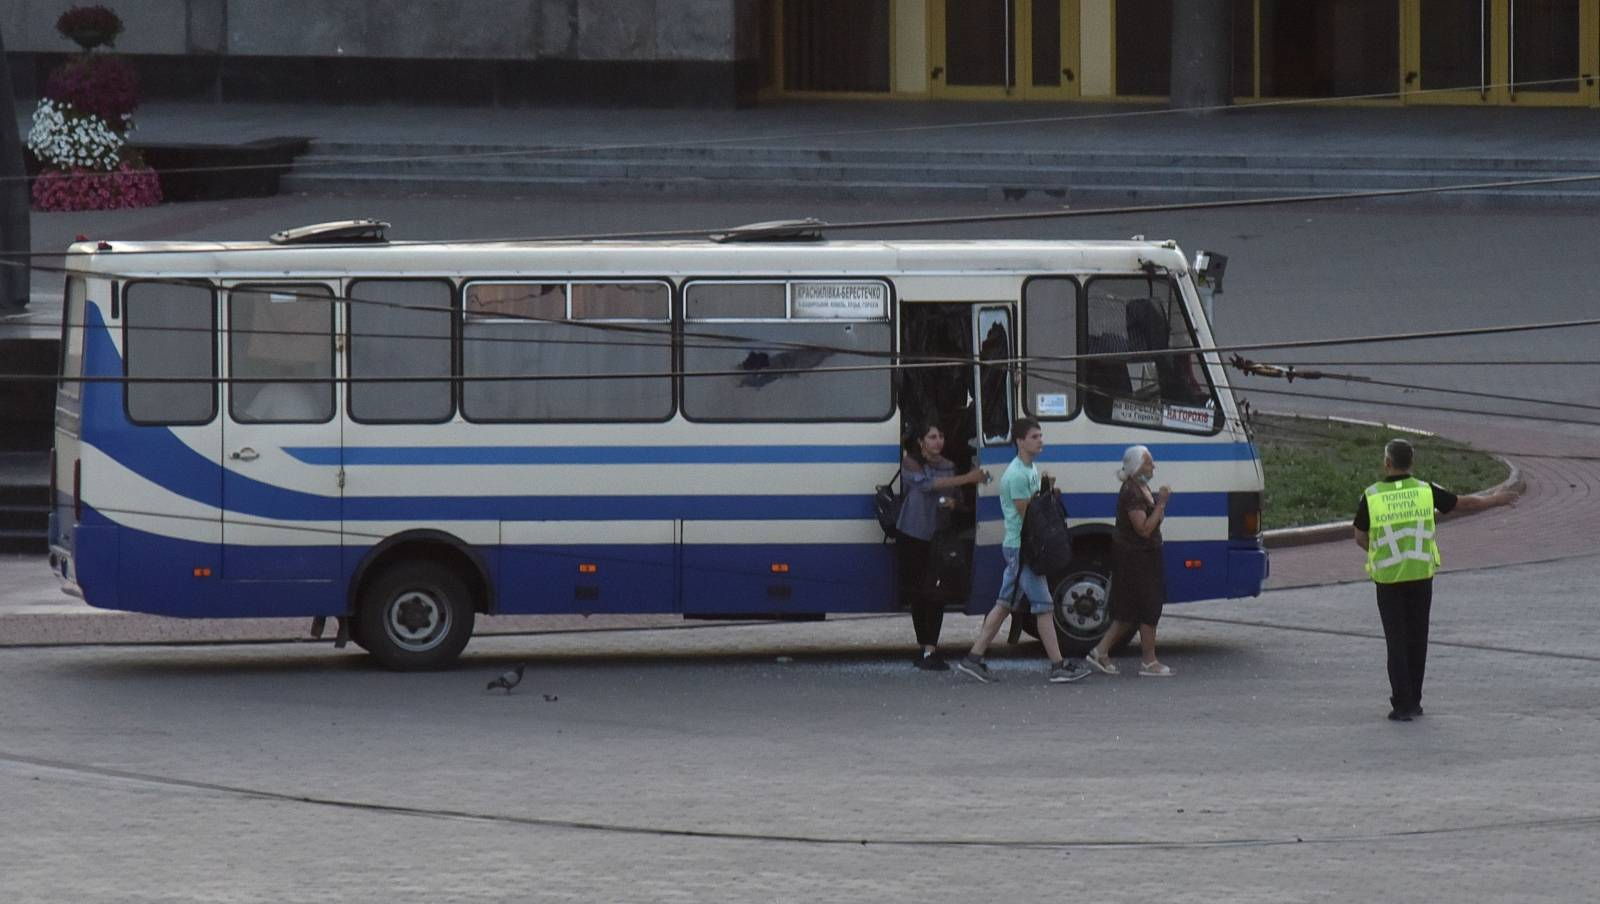 Three hostages walk out of a seized passenger bus in Lutsk